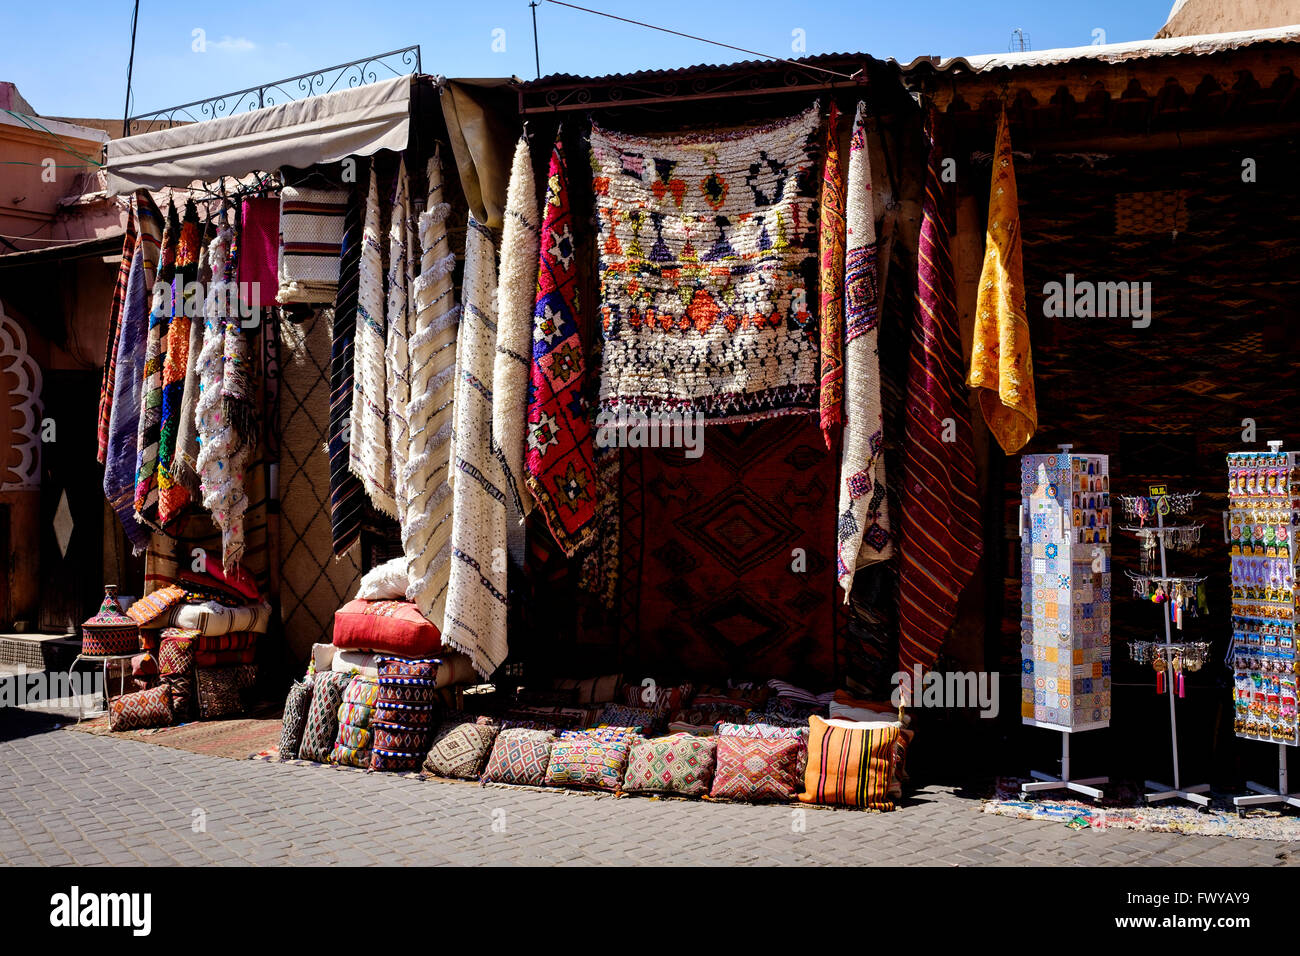 Berber Teppiche Marrakesch Carpets Marrakech Souk Stockfotos And Carpets Marrakech Souk